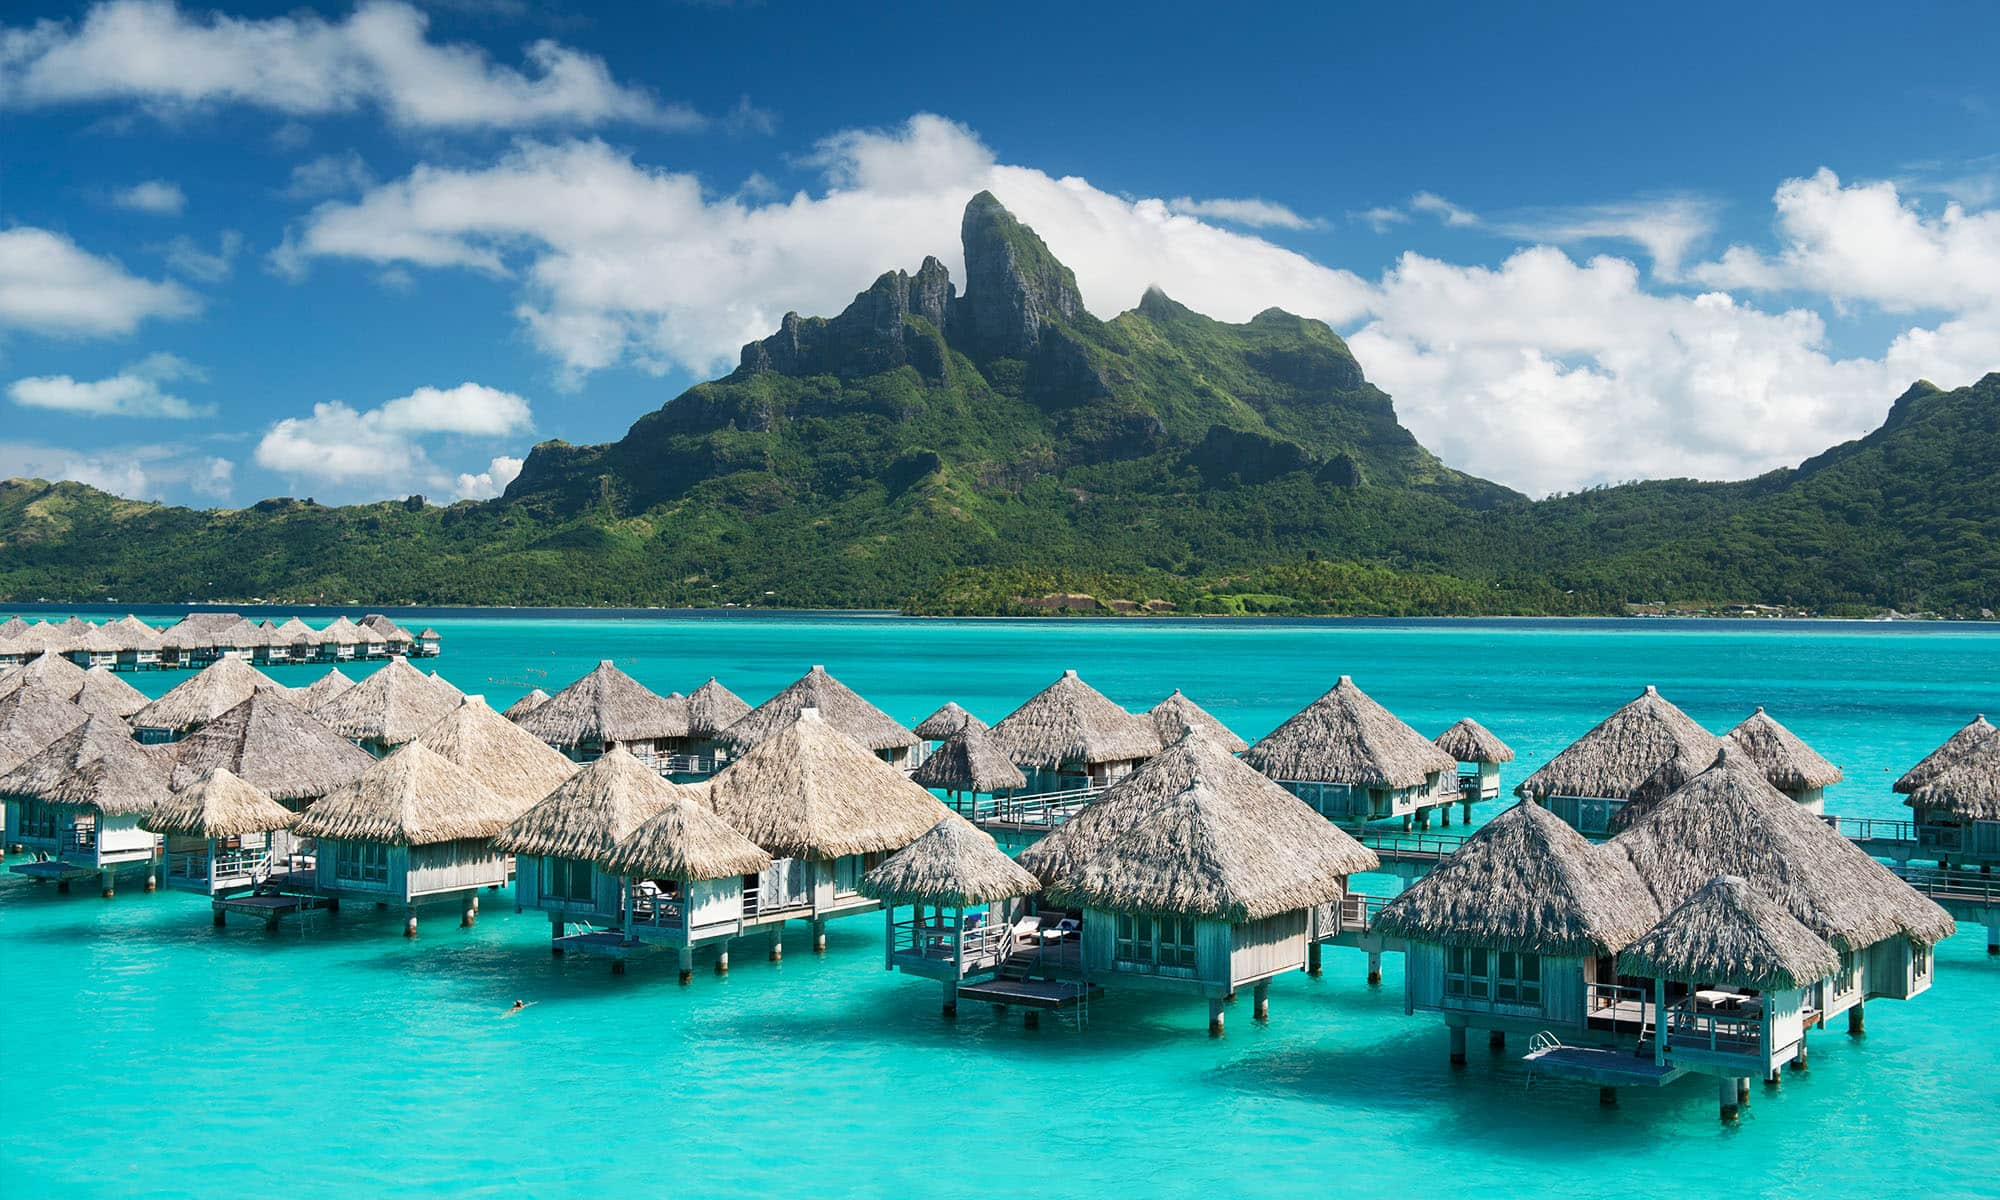 San Franicsco to Tahiti French Polynesia $592-$602 RT Nonstop Airfares on United Airlines Main Cabin (Travel January - April 2021)